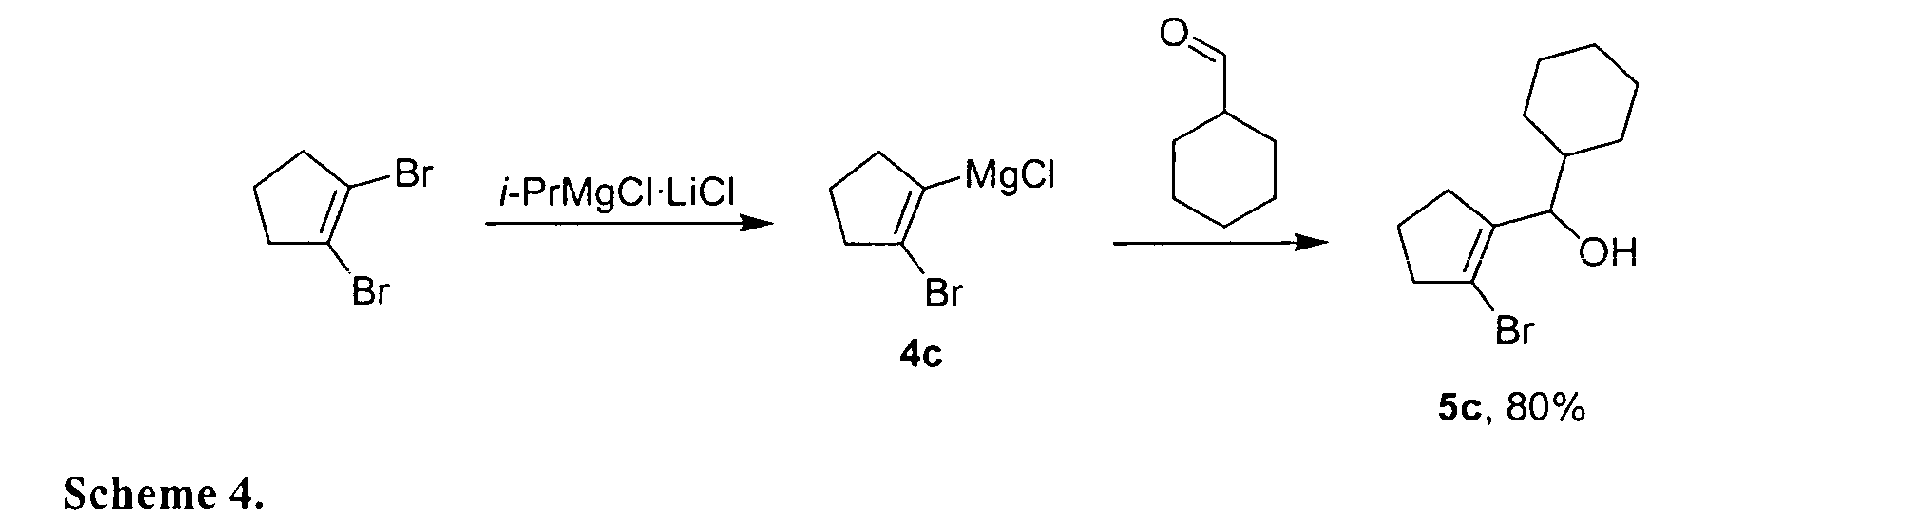 the grignard reagent and its properties Can we able to synthesis a grignard reagent from amino acid where the compounds in contrast to grignard reagents or or different physical properties.